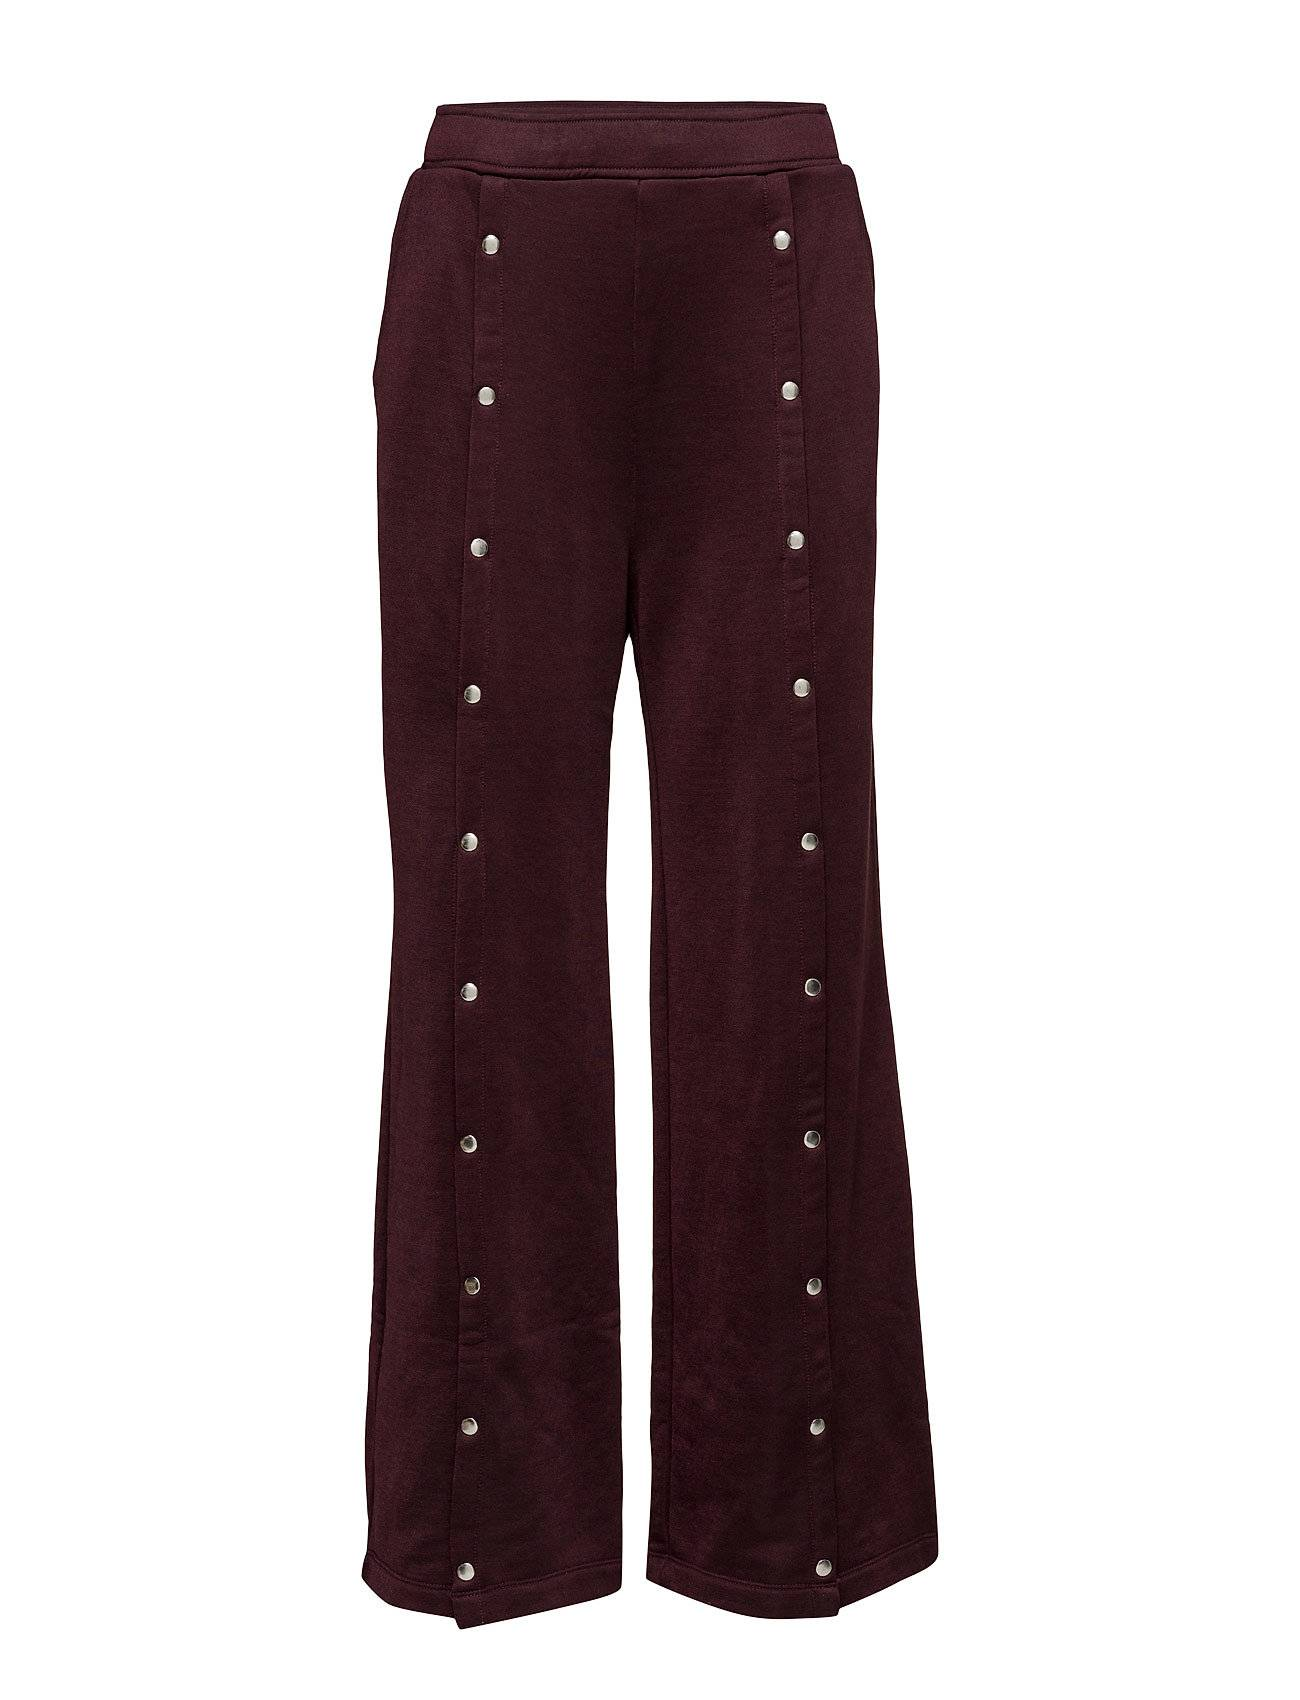 T by Alexander Wang Sleek French Terry Wide Leg Pull On Pant W/ Snaps